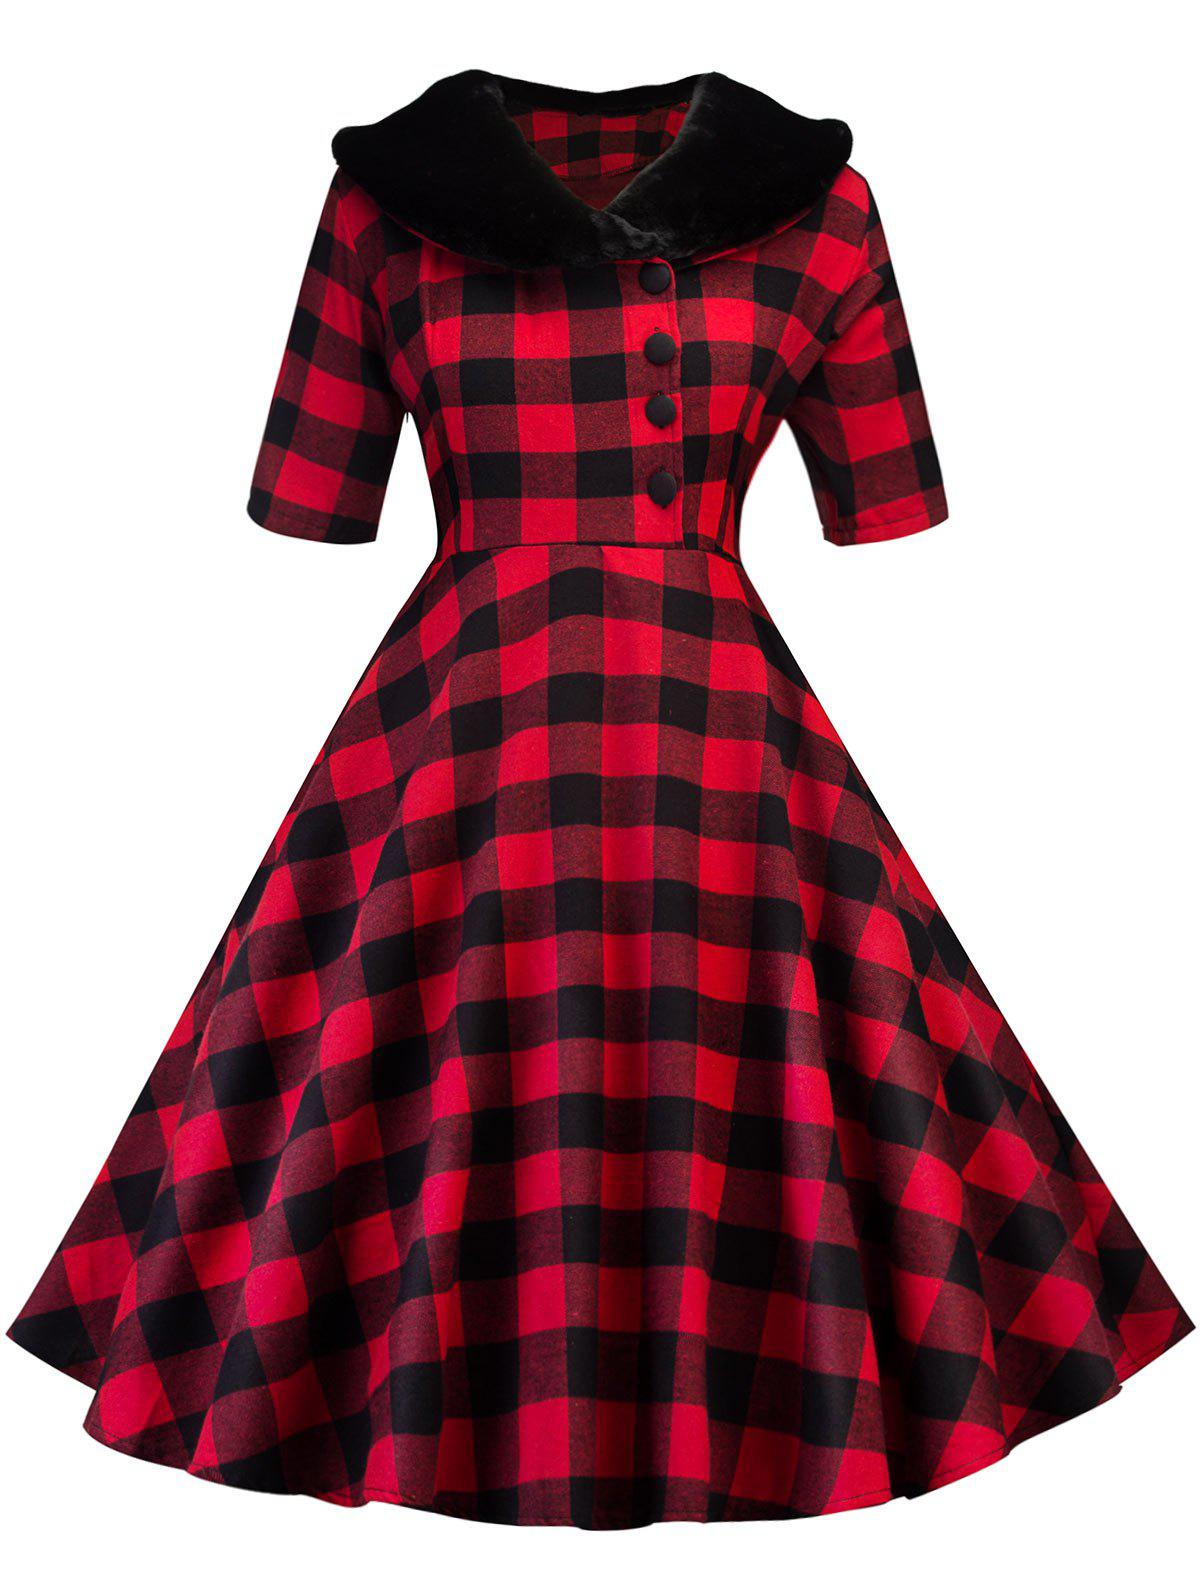 Vintage Plaid Fit and Flare Swing Dress zip back fit and flared plaid dress